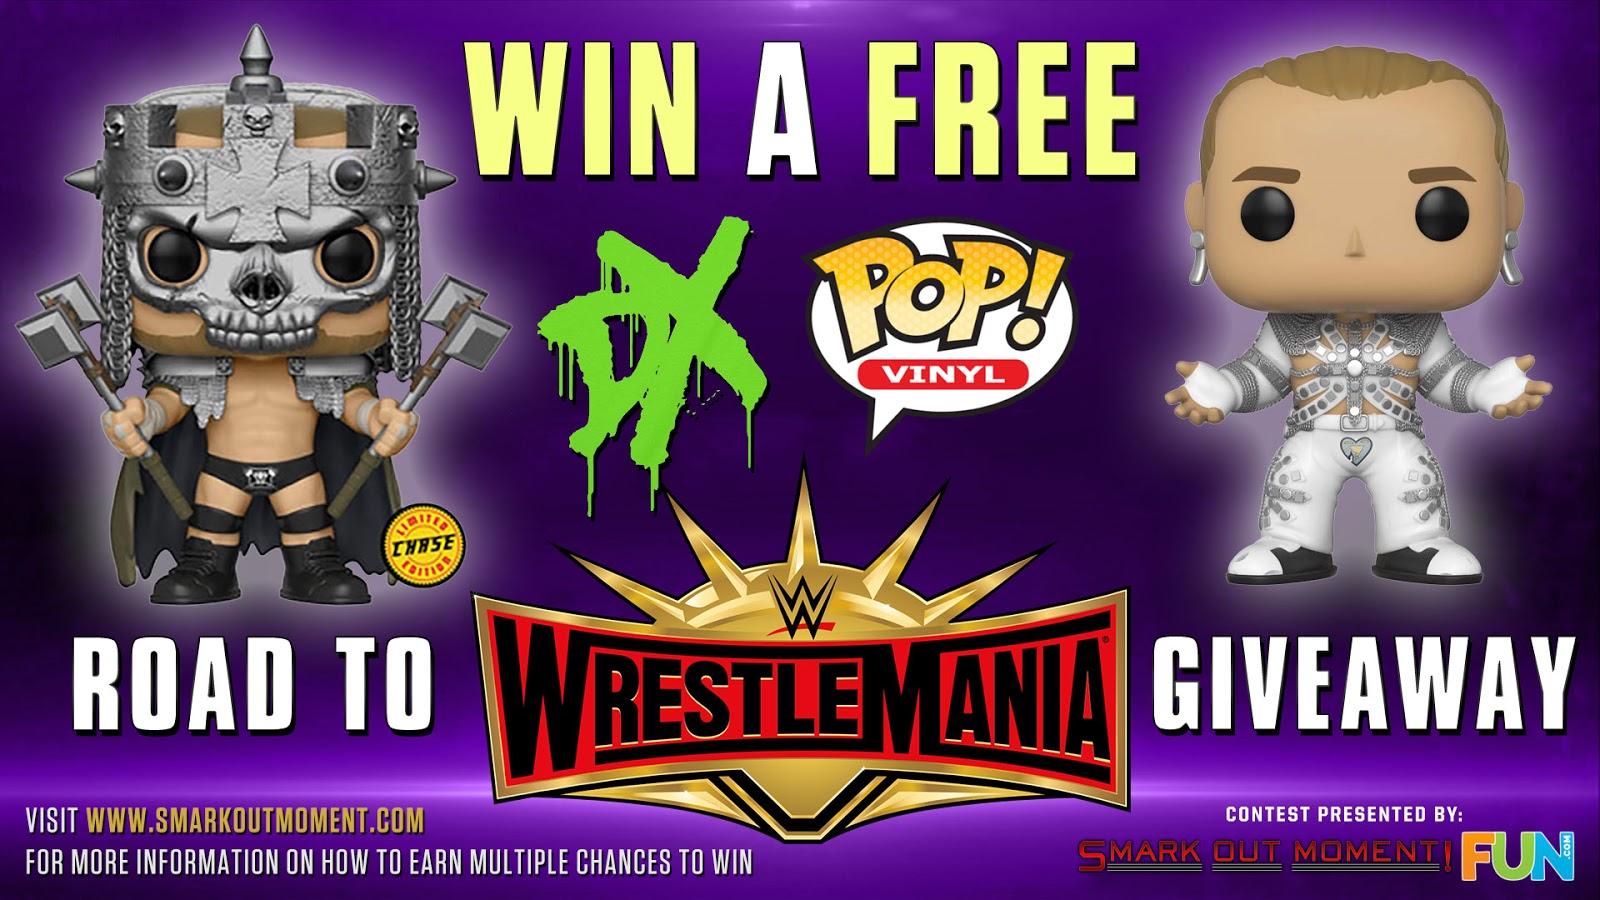 WWE Contest Funko Pop Giveaway